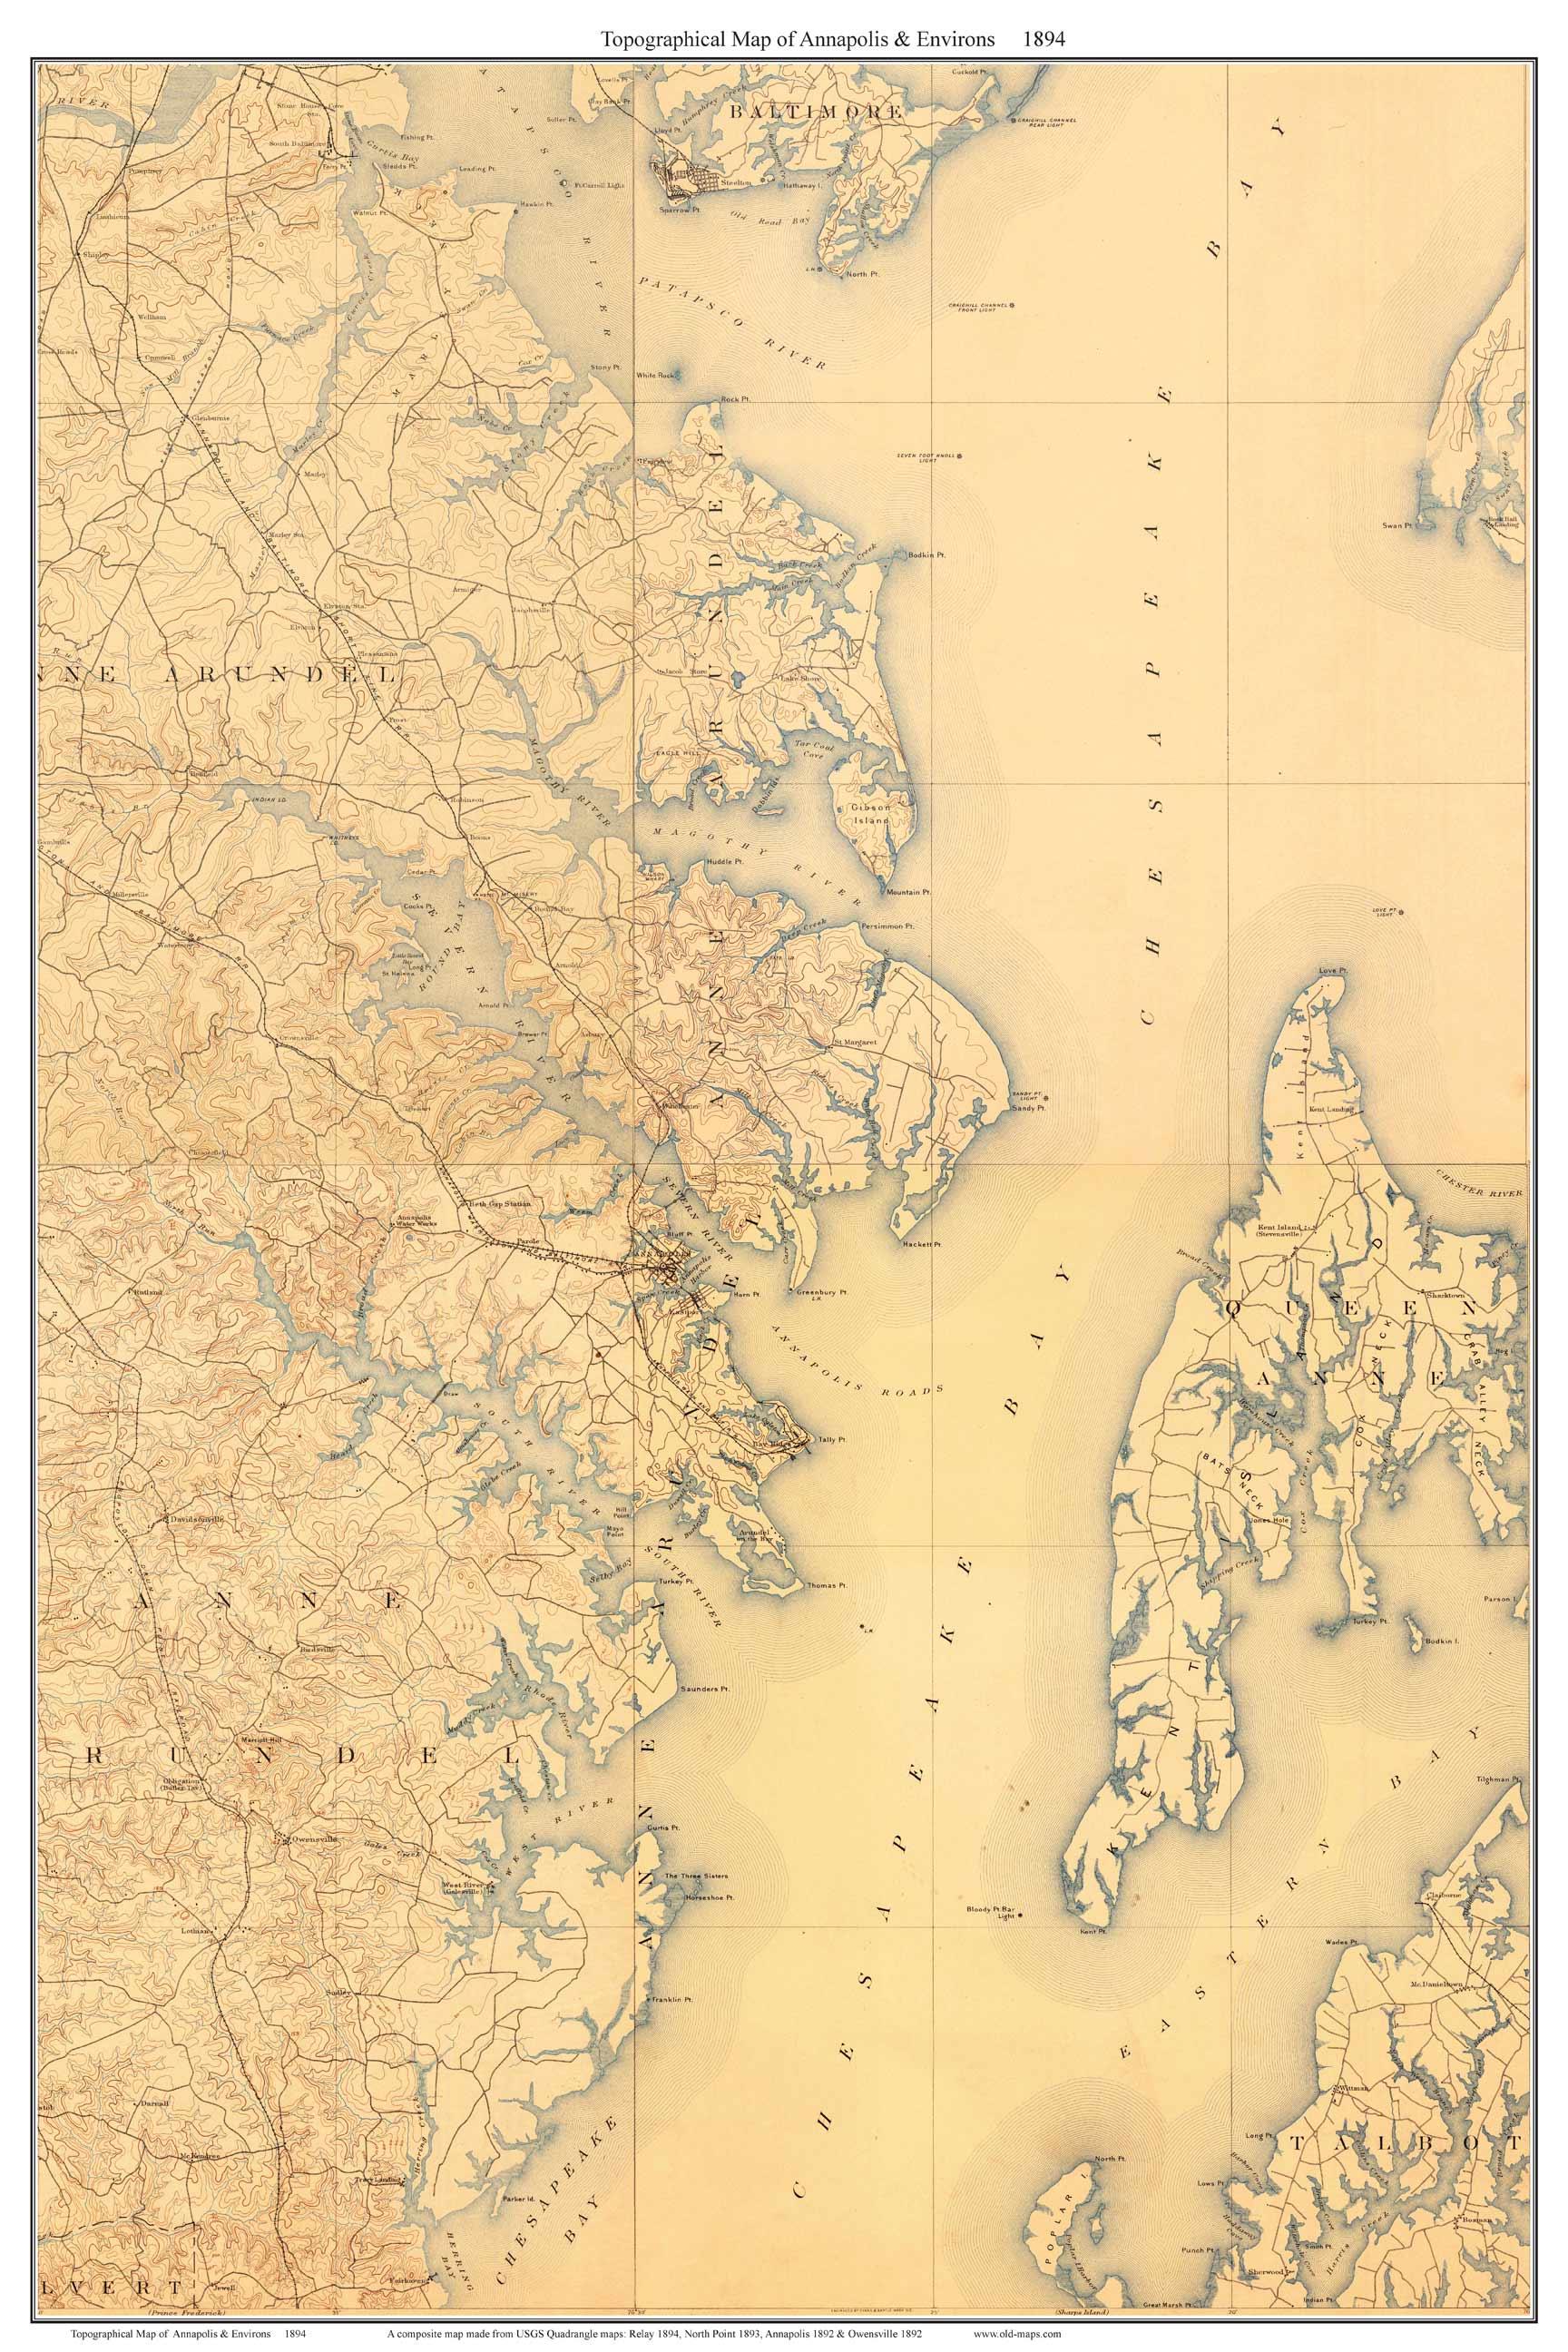 Old Topographical Maps Of The Chesapeake Bay Area 4.2 creating new map definitions. old maps